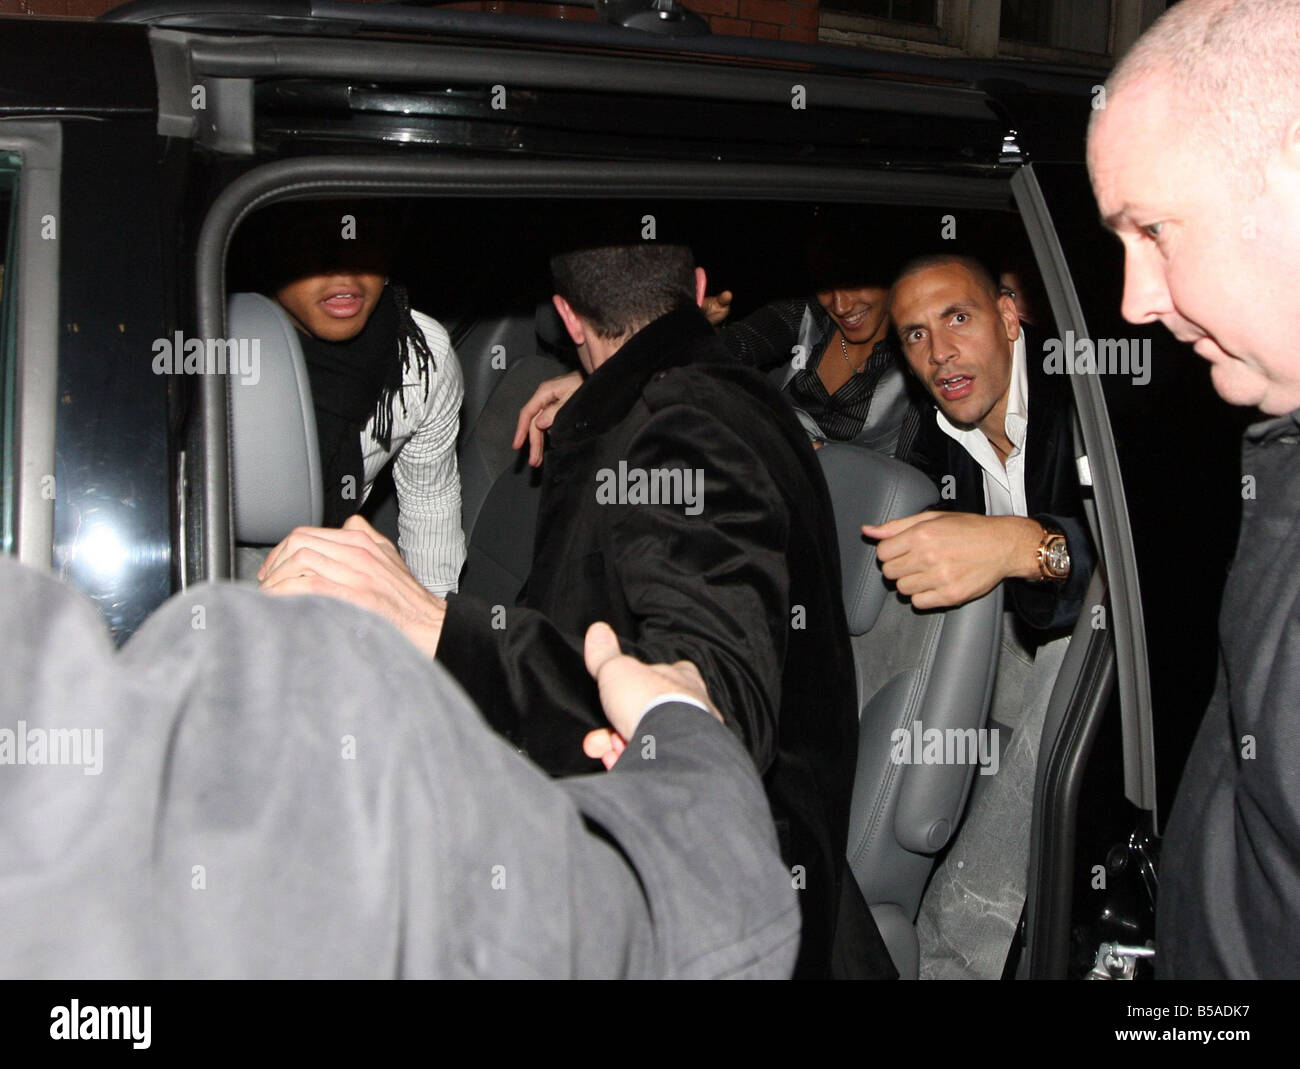 The Manchester United Players leave the Old Grapes pub after hours of drinking and singing along to the band at - Stock Image